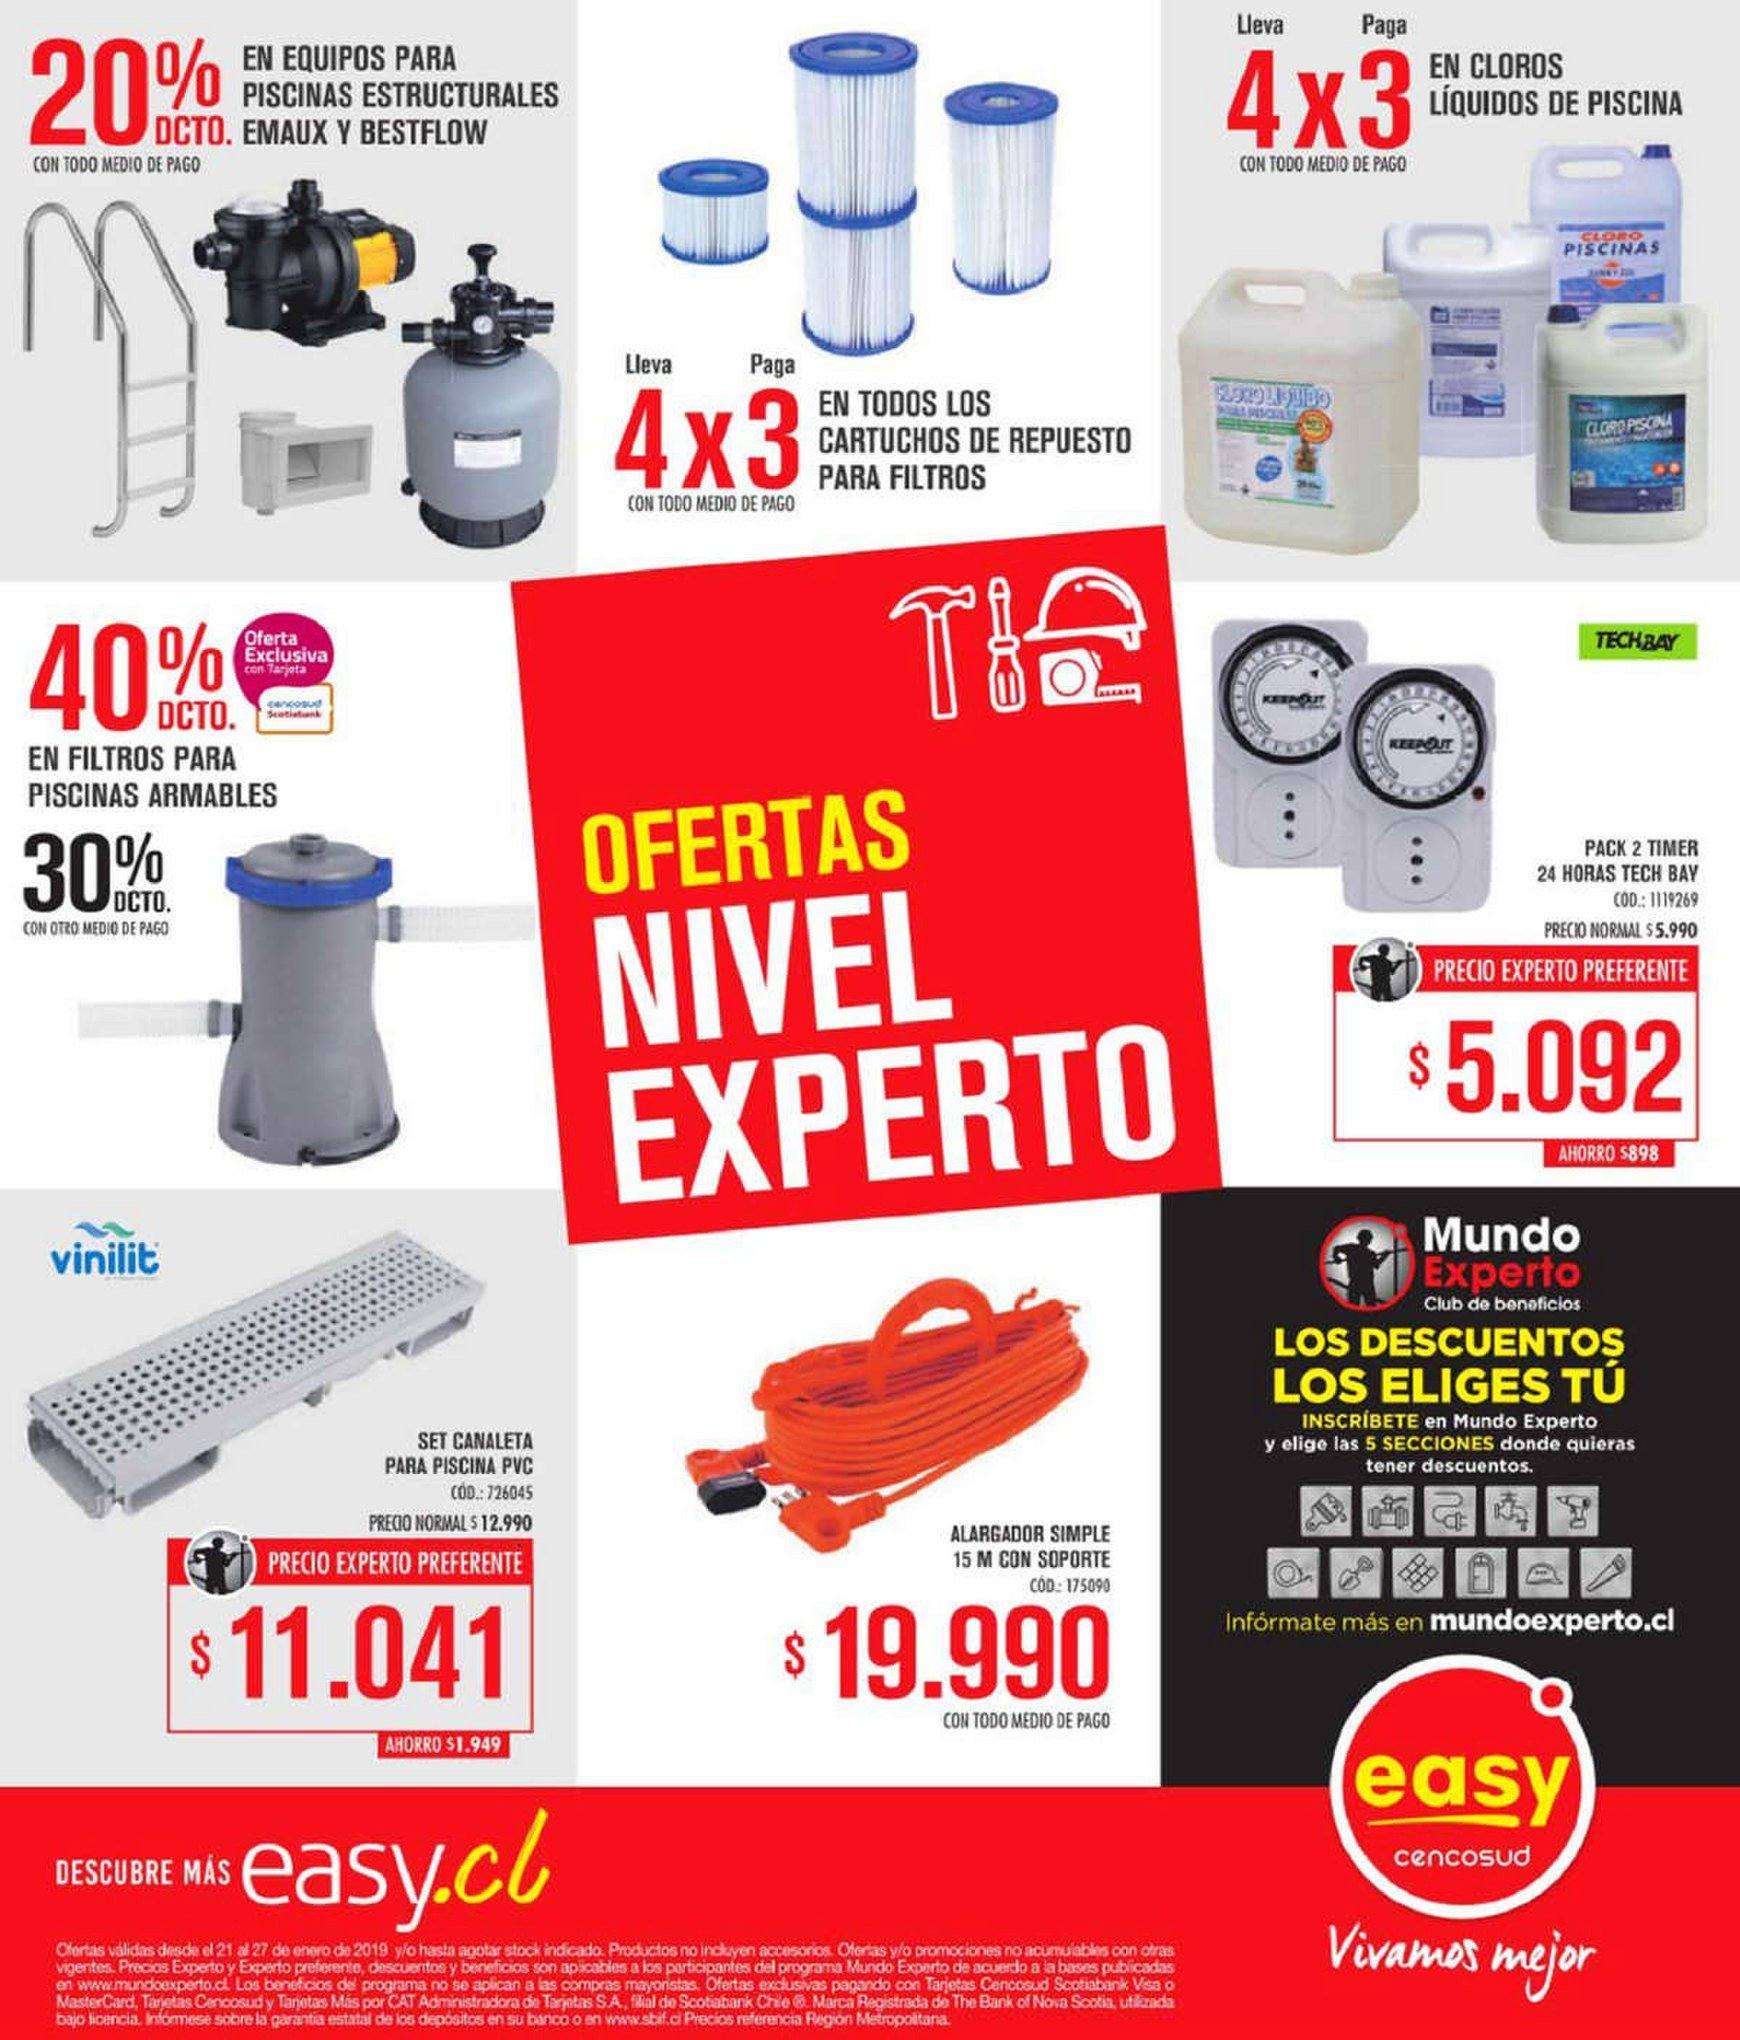 Folleto actual Easy - 21.1.2019 - 27.1.2019 - Ventas - accesorios, banco, cartucho, piscina. Página 1.